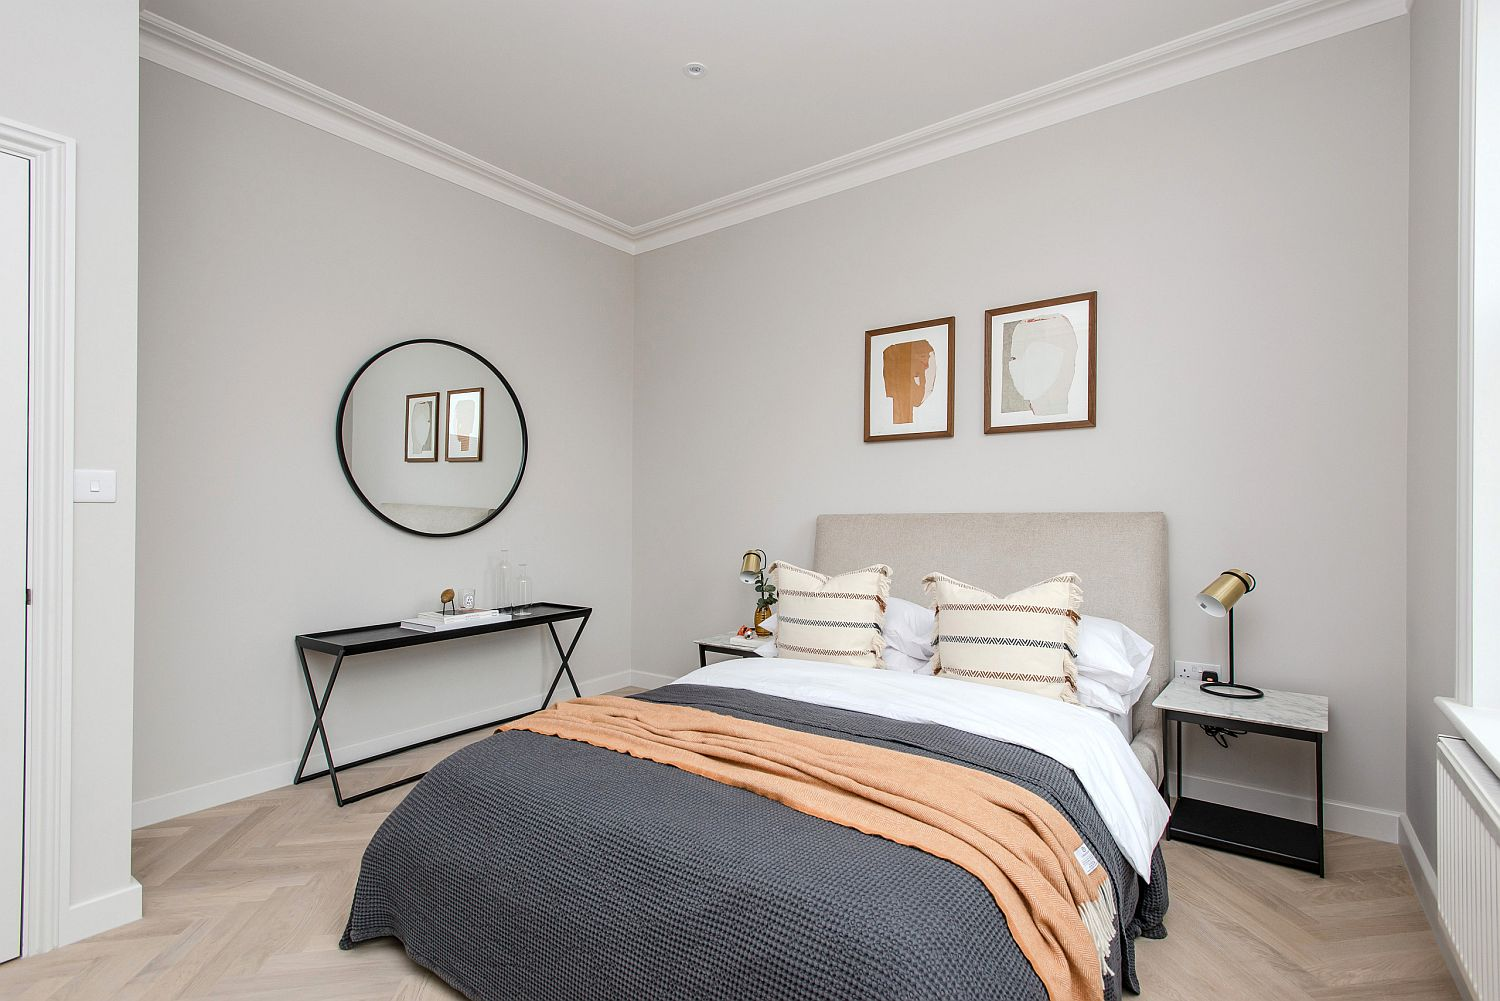 Tiny bedroom in gray for the small contemporary apartment in London